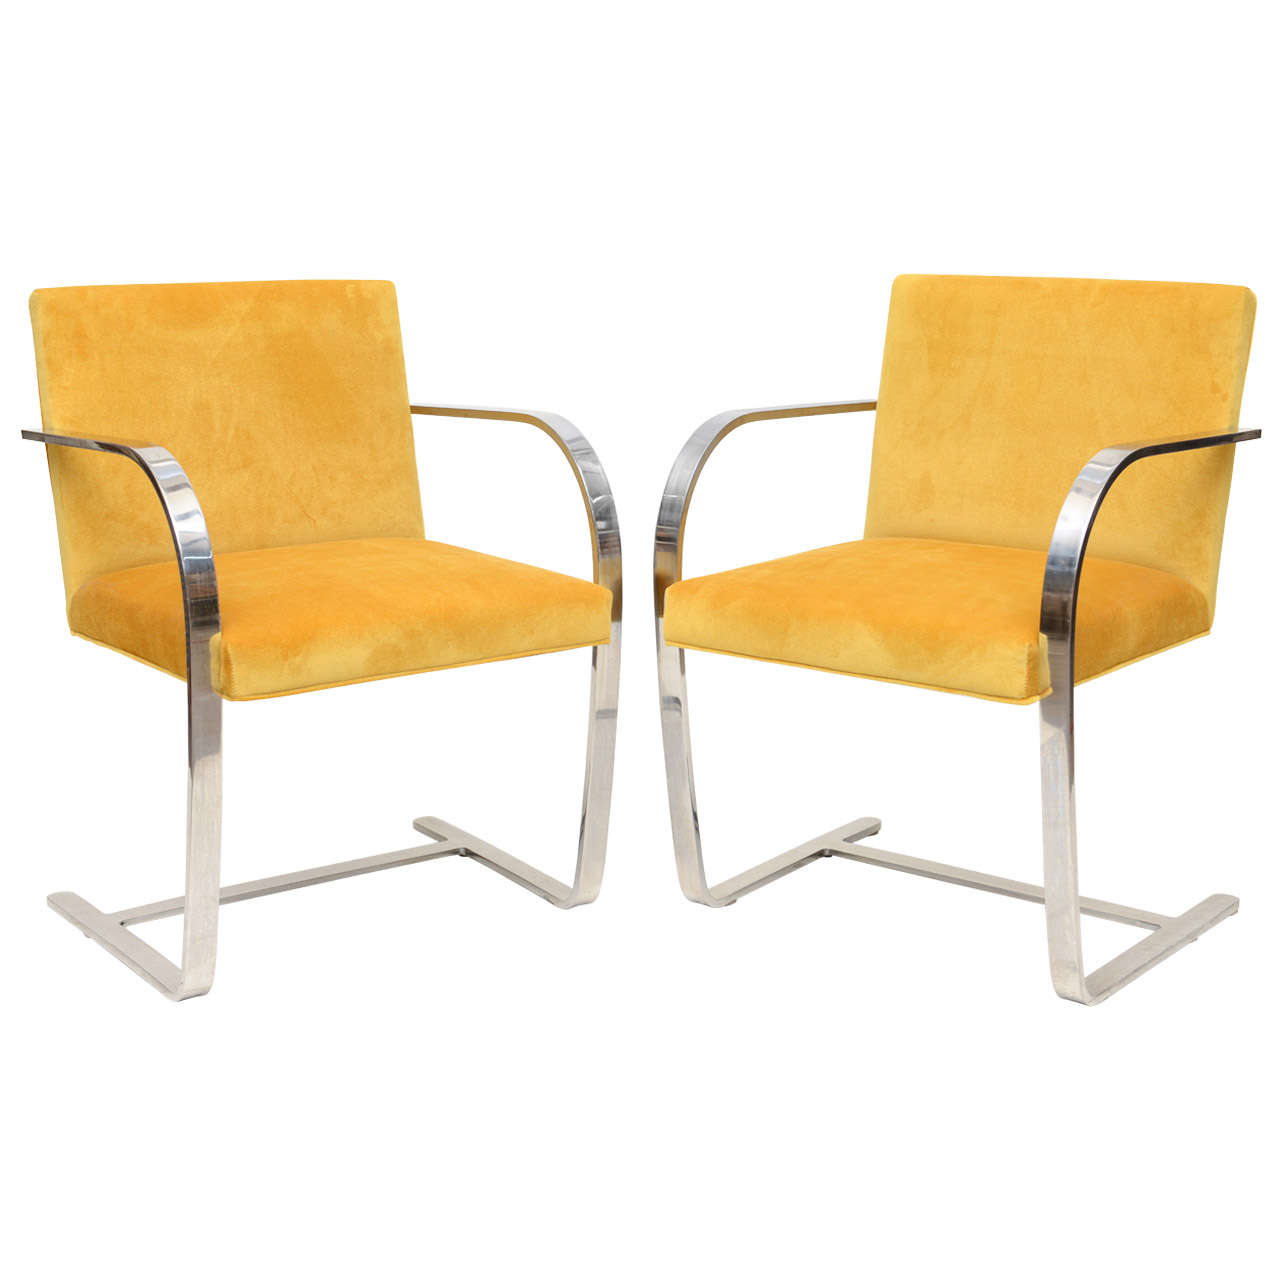 pair of ludwig mies van der rohe brno chairs for knoll at 1stdibs. Black Bedroom Furniture Sets. Home Design Ideas